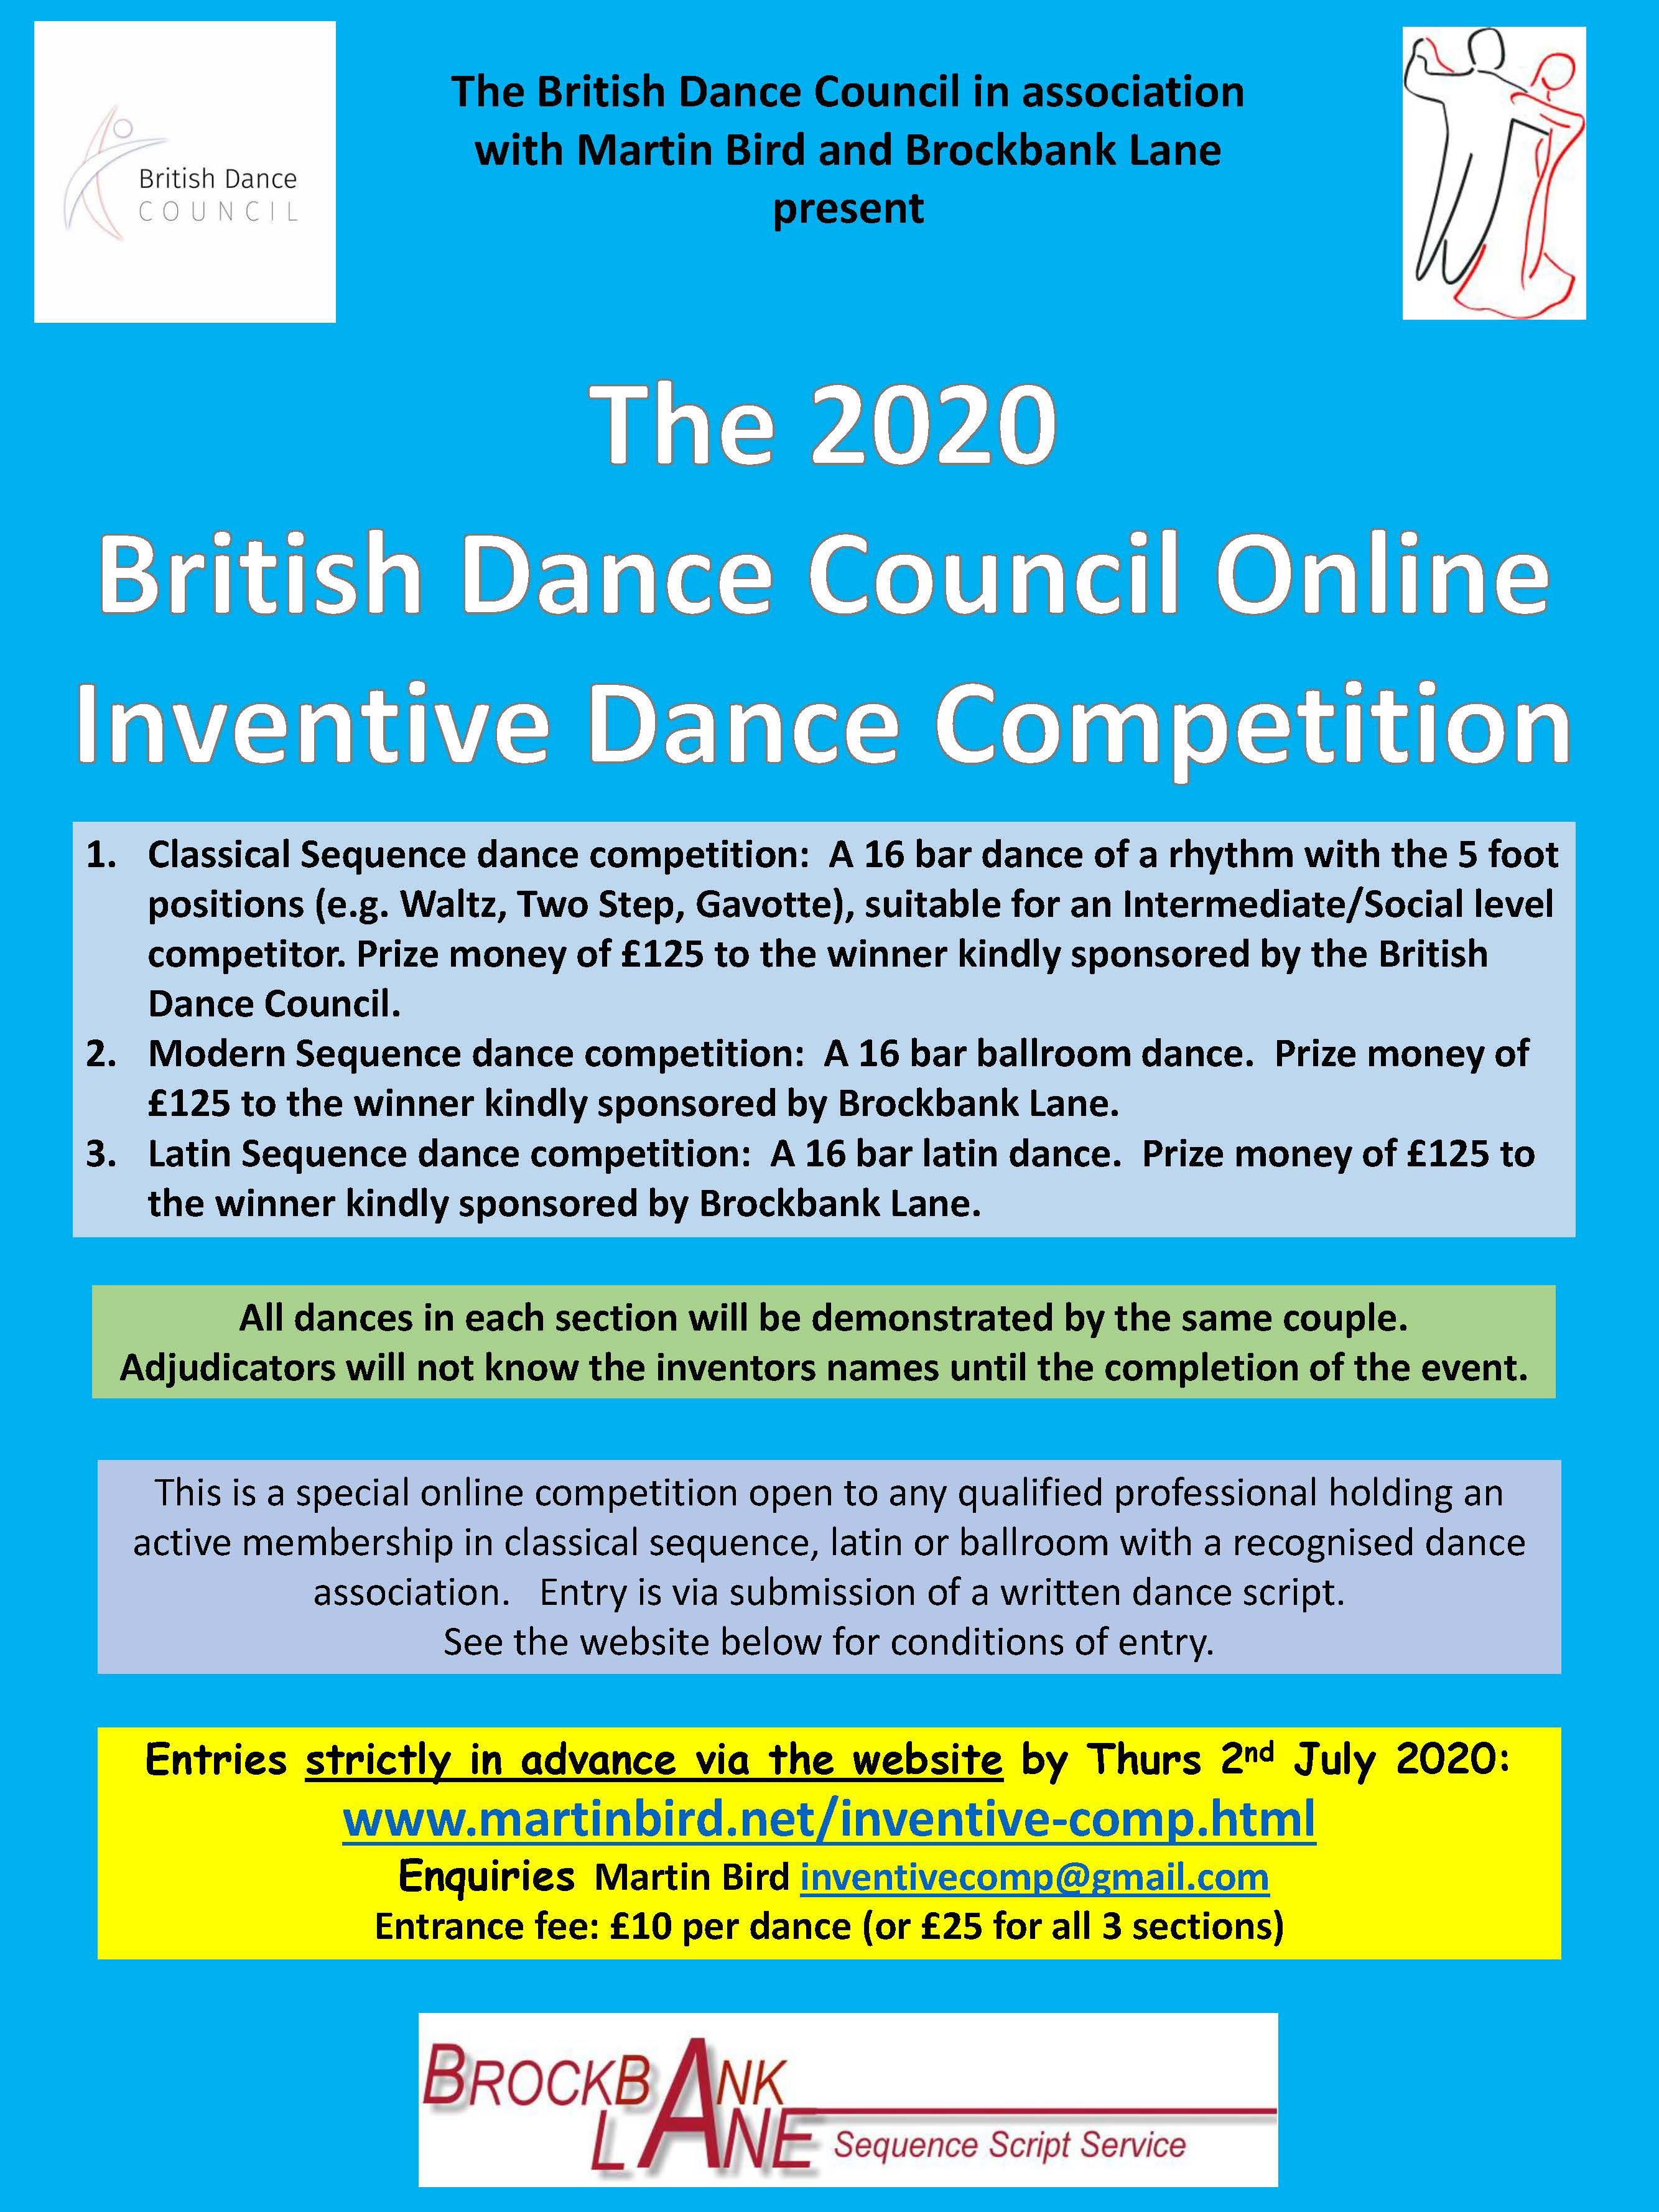 The 2020 British Dance Council Inventive Dance Competition